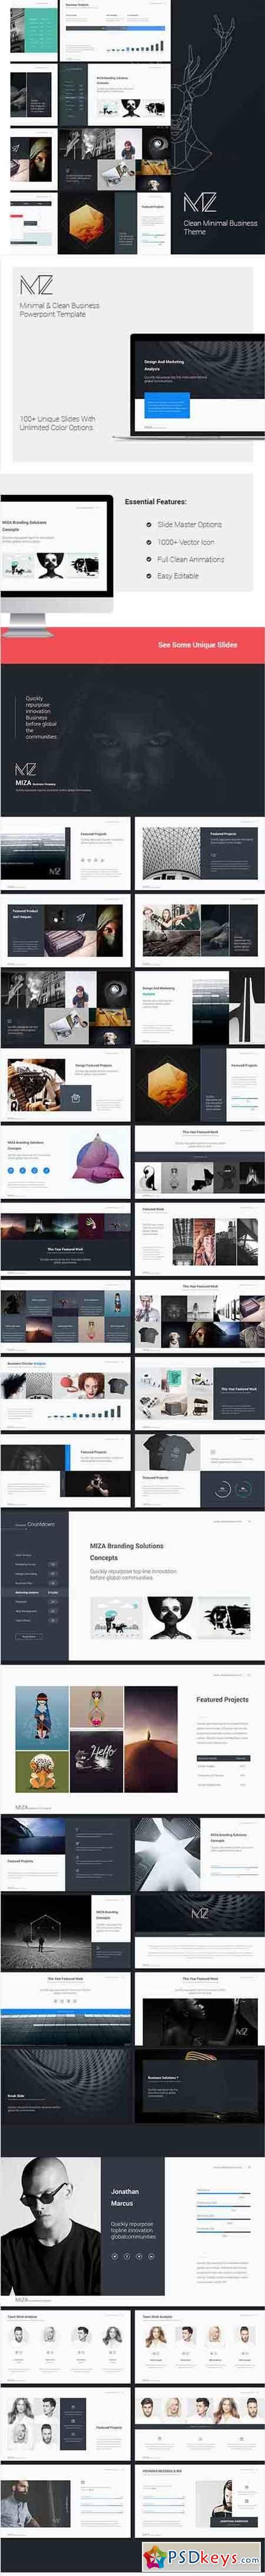 Miza - Business Clean Theme 14813182